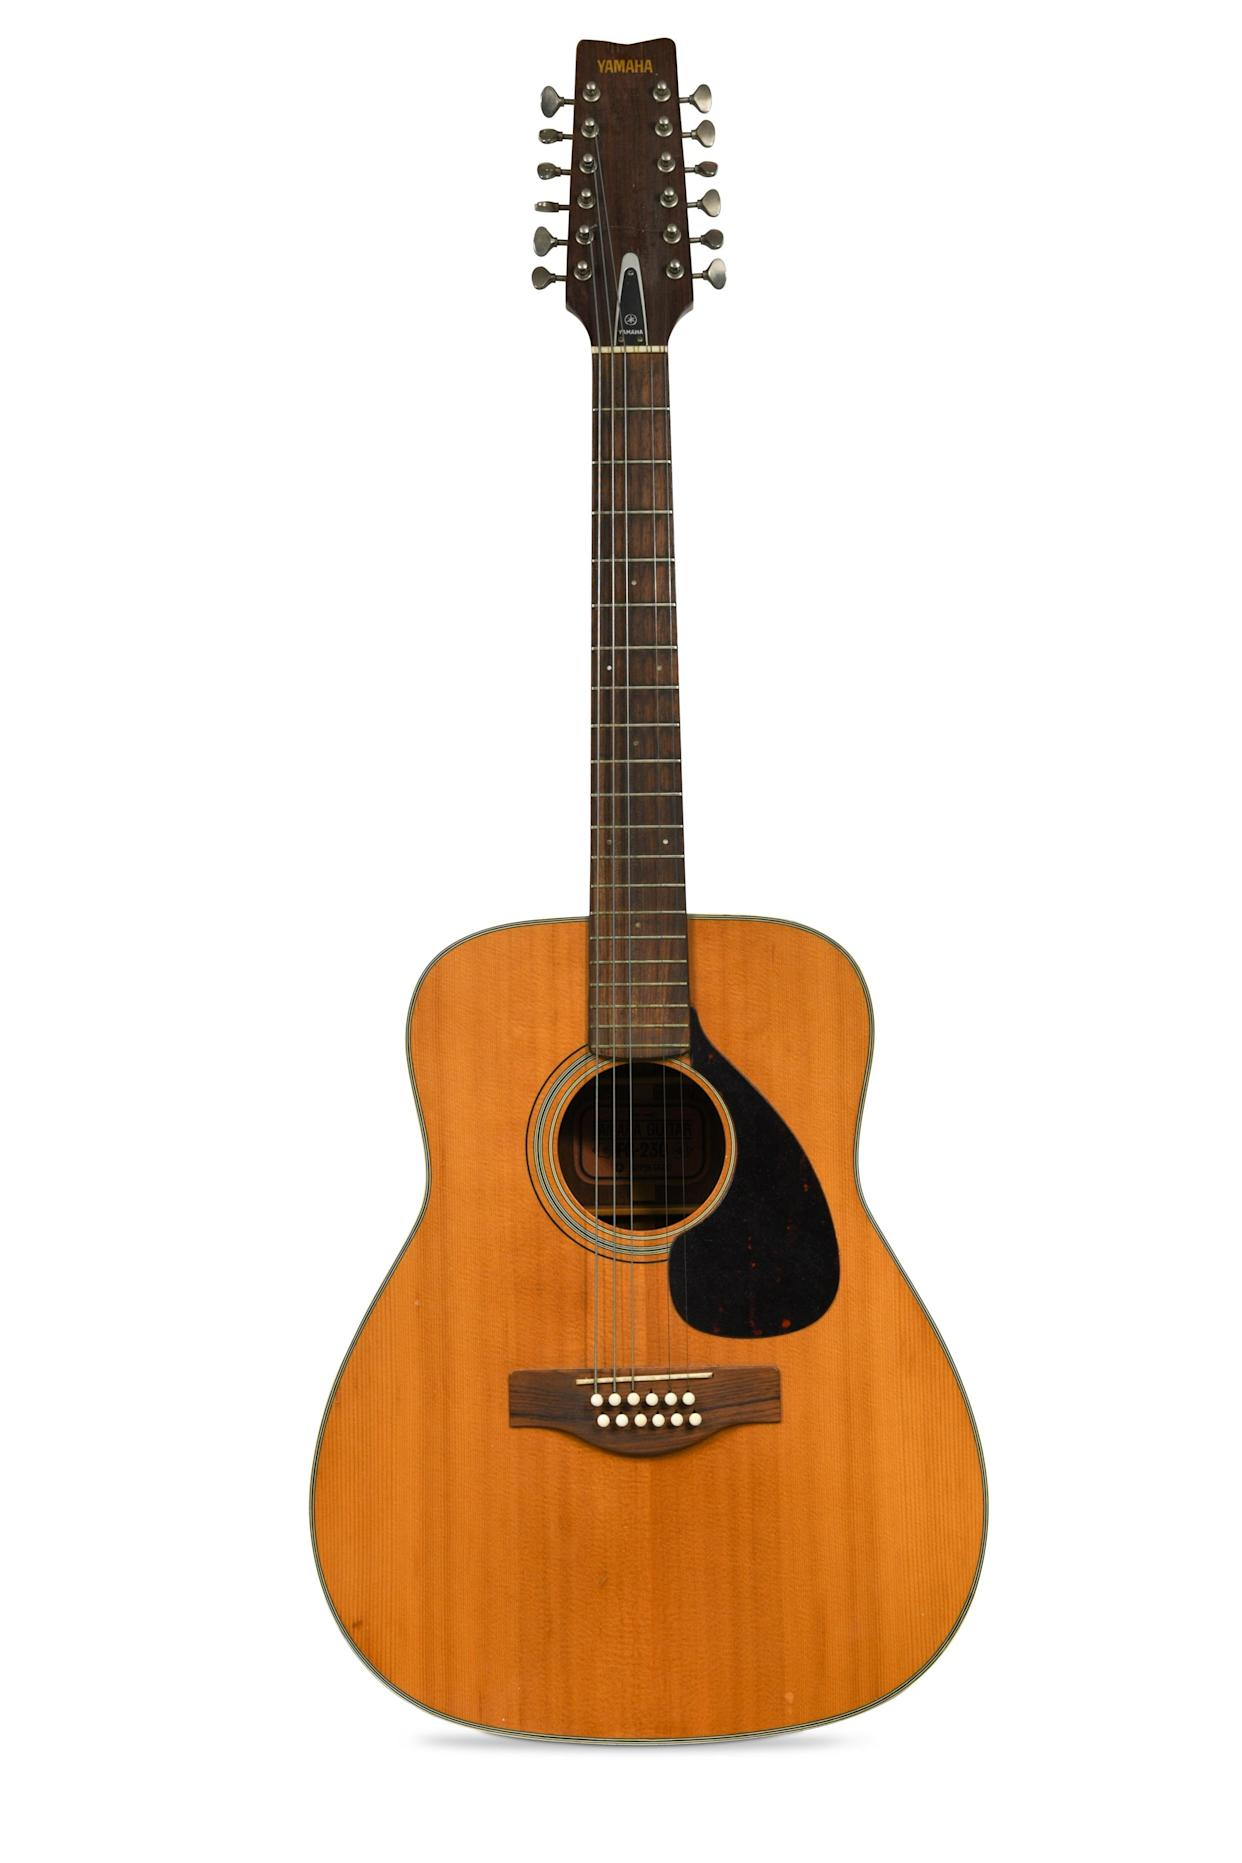 A 12-string Yamaha acoustic guitar once owned by Pink Floyd founder member Syd Barrett is to be sold at auction with a pre-sale estimate of £5,000 to £10,000. (Cheffins/ PA)